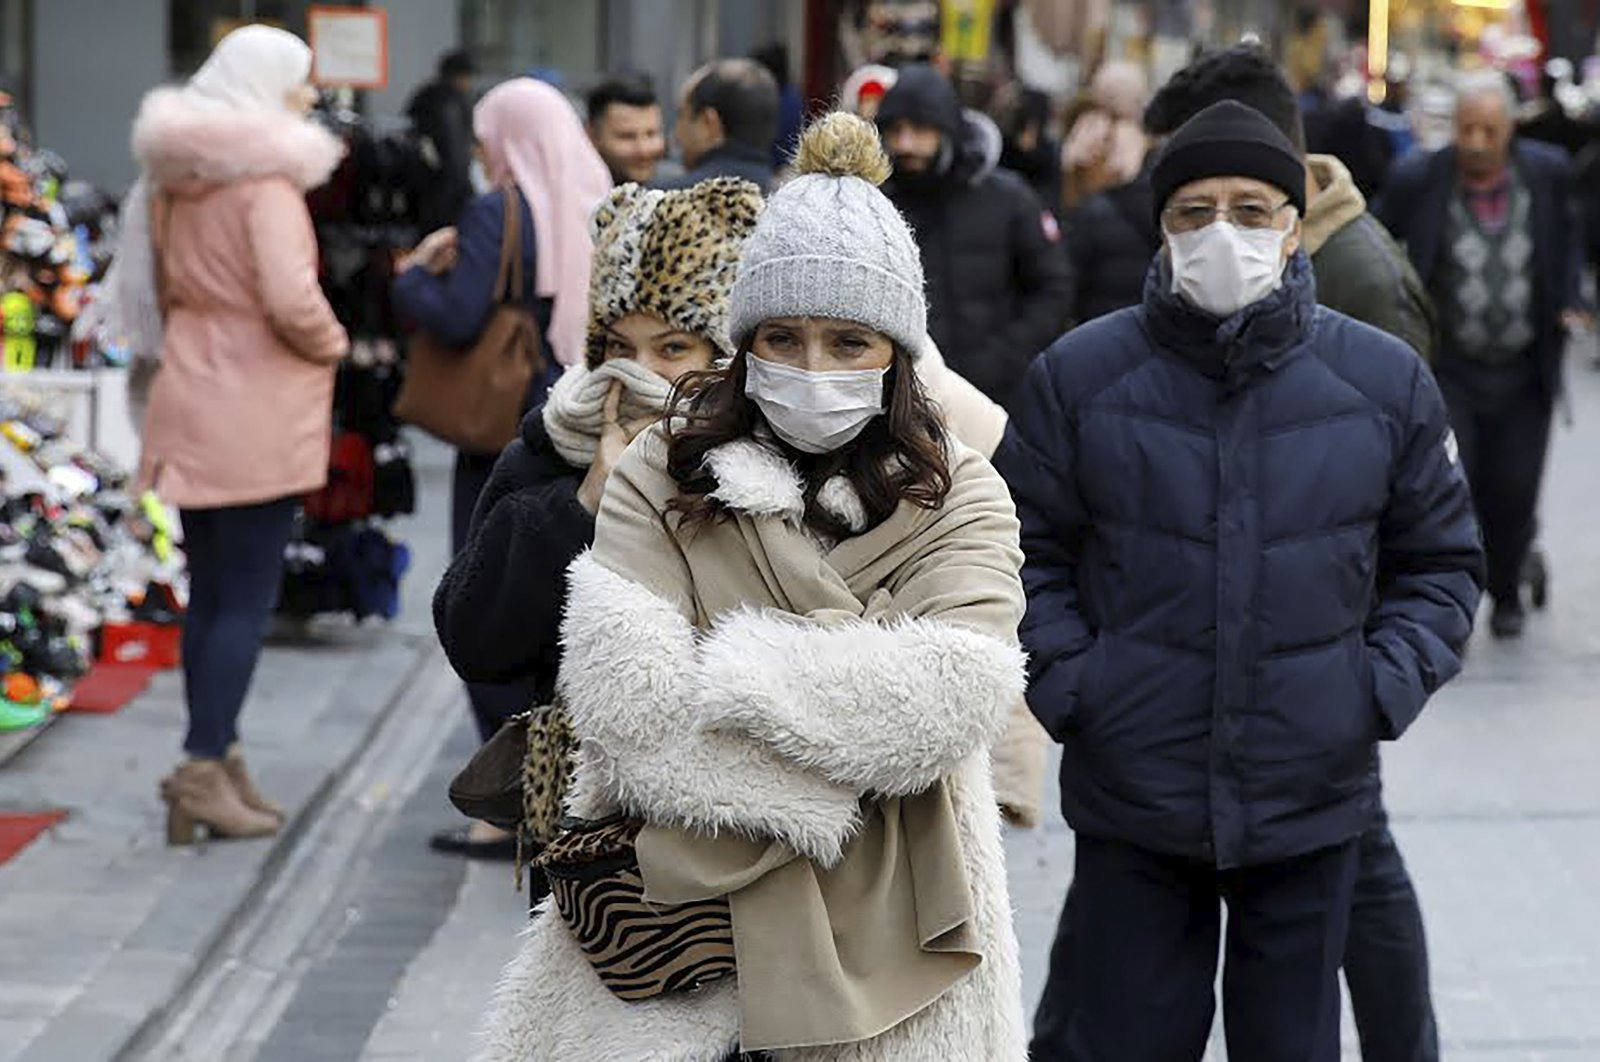 People wear protective masks due to coronavirus concerns in Istanbul, Turkey, March 16, 2020. (Reuters Photo)